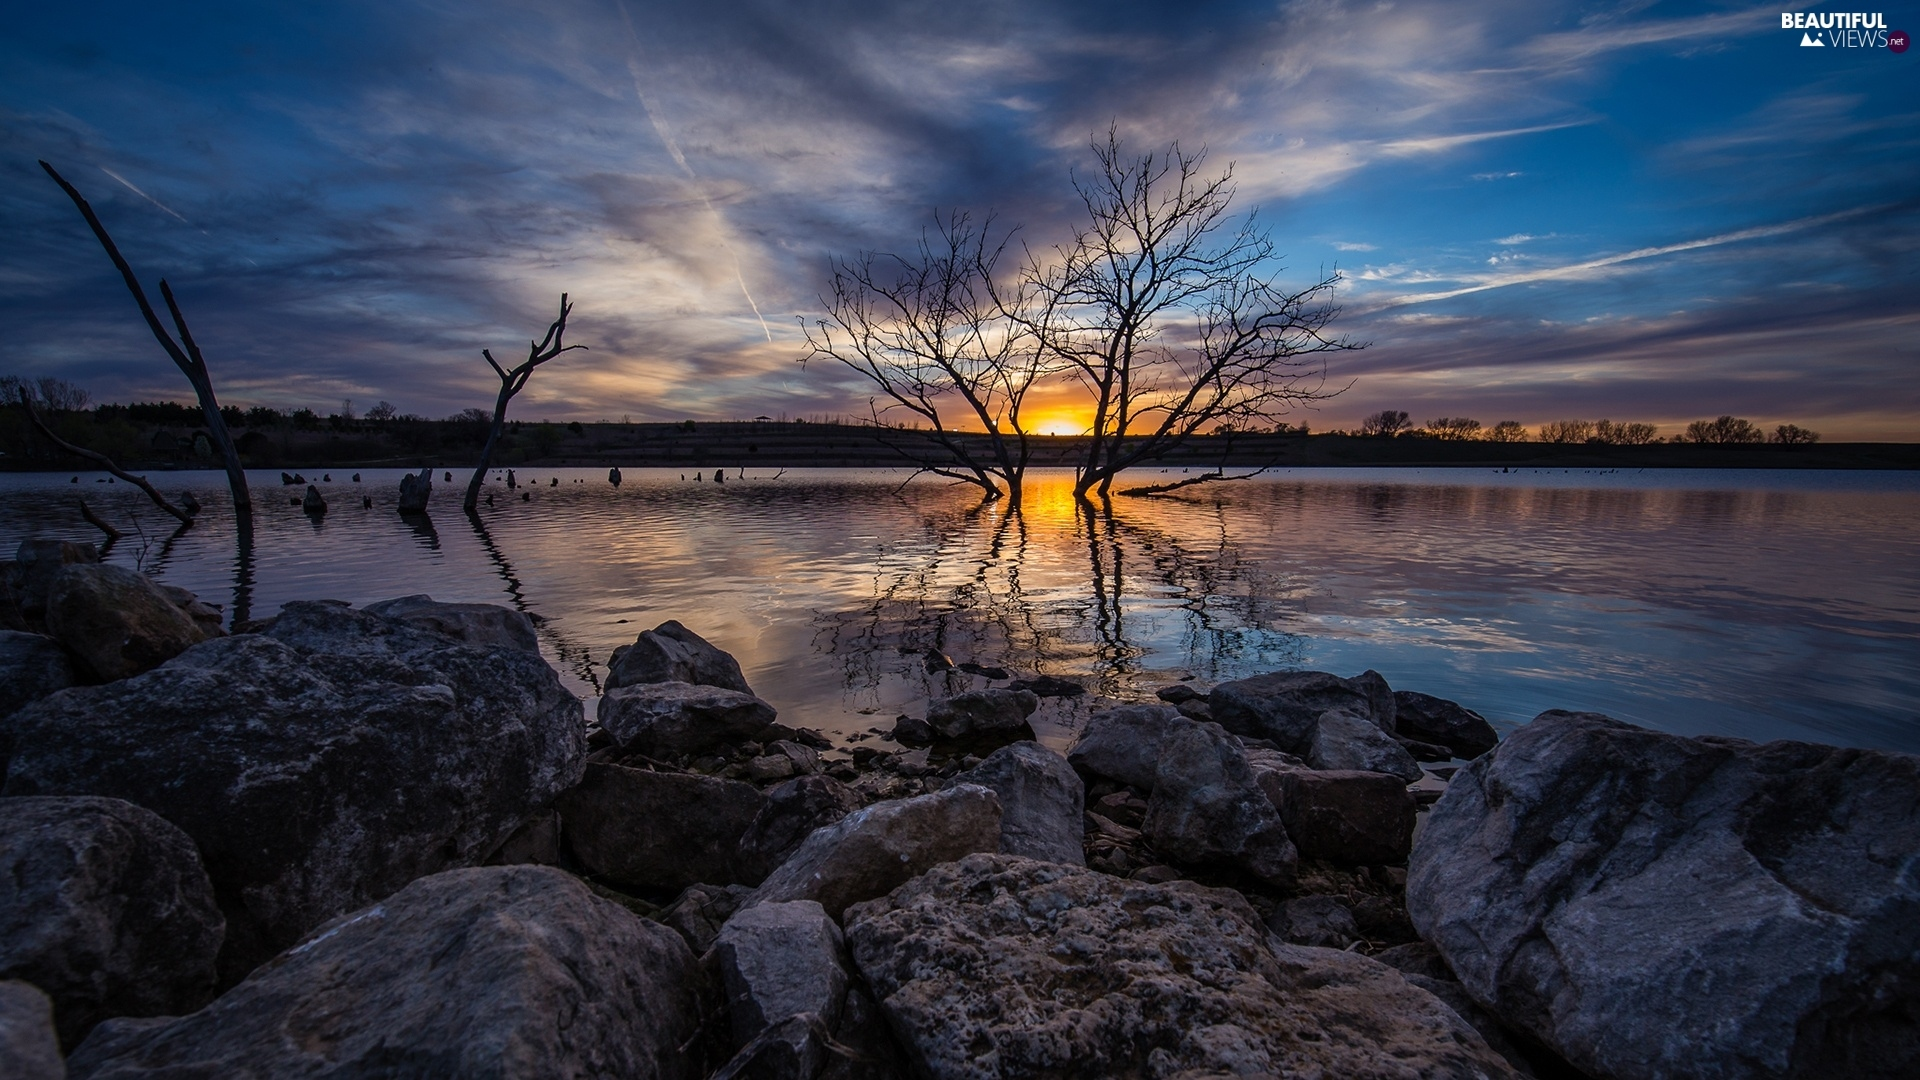 Great Sunsets, lake, trees, viewes, Sky, Stones